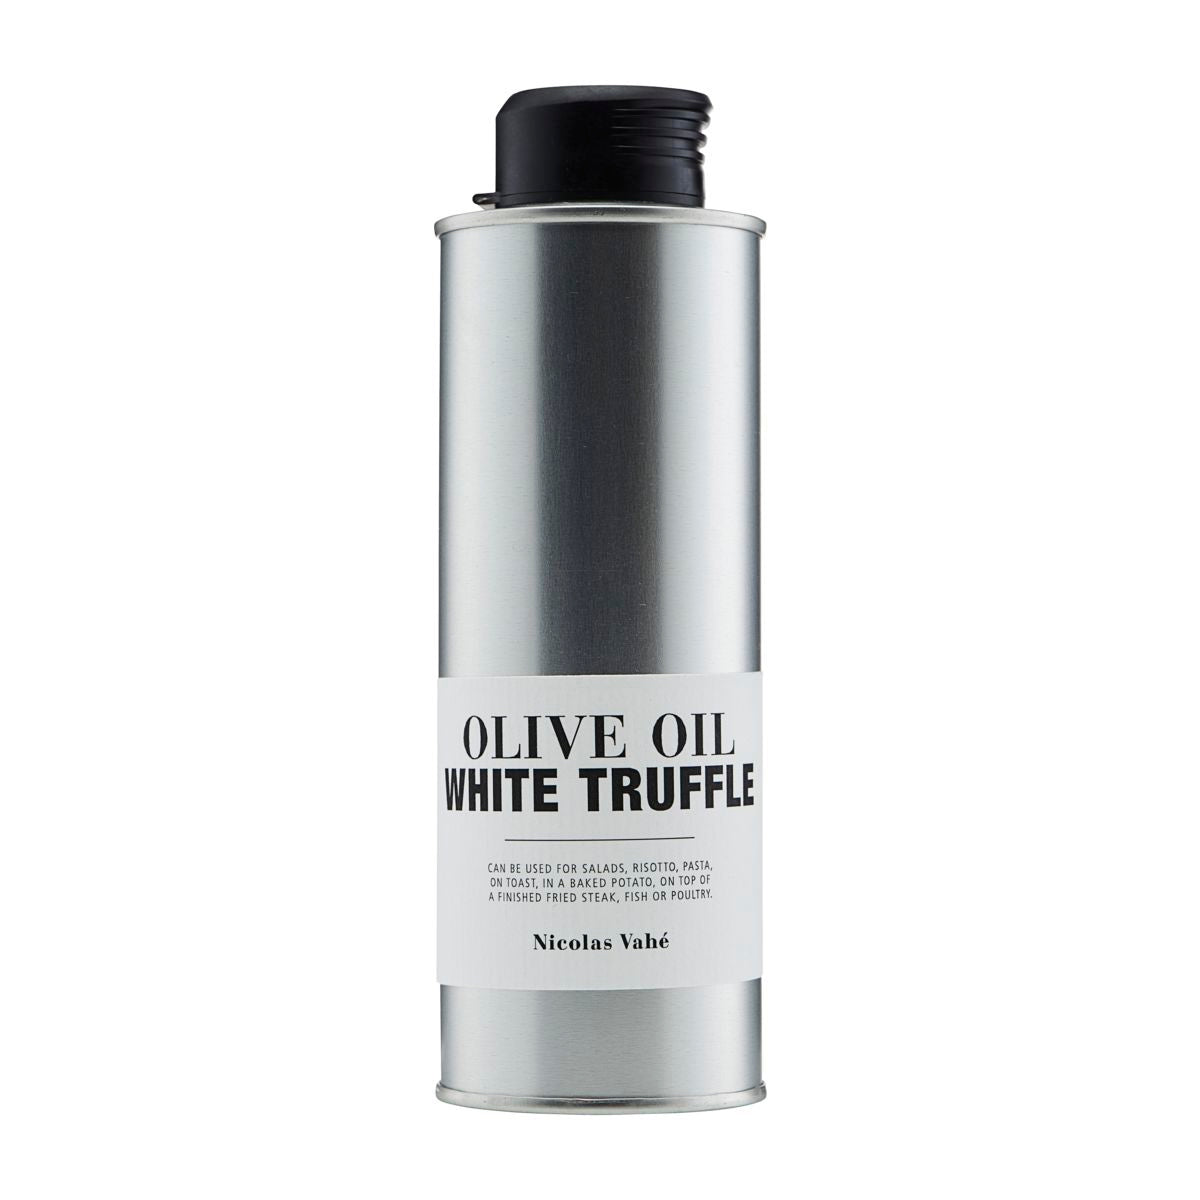 VIRGIN OLIVE OIL - WHITE TRUFFLE